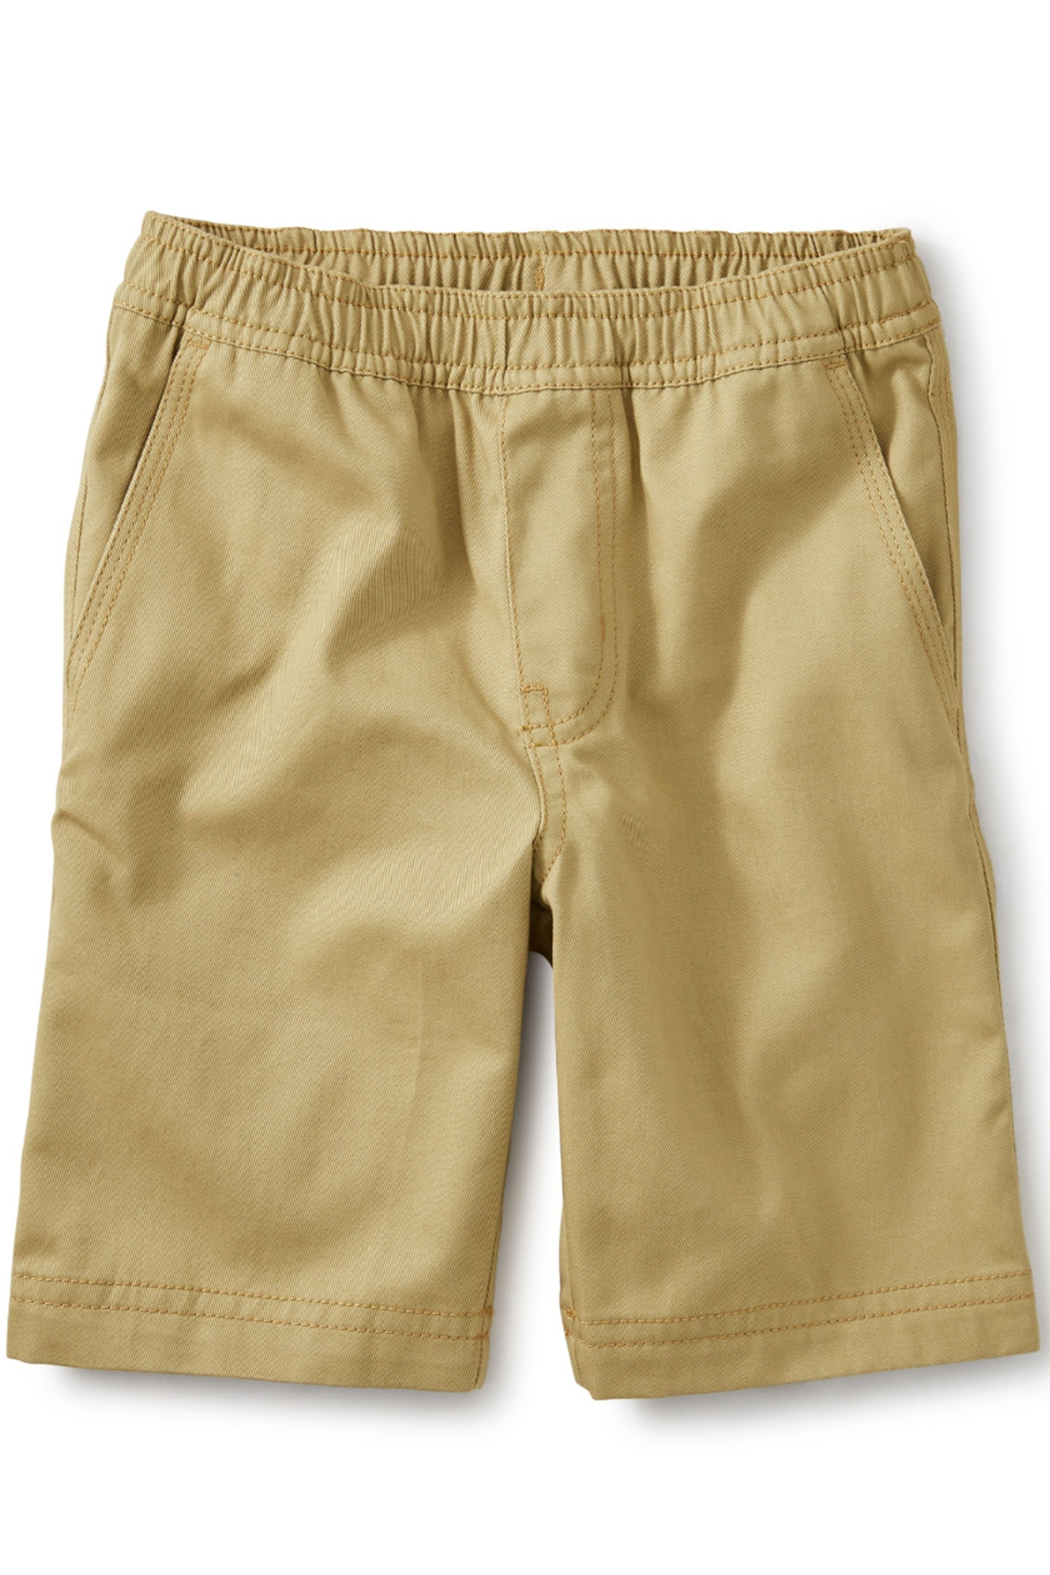 Tea Collection Easy Does It Twill Shorts - Main Image